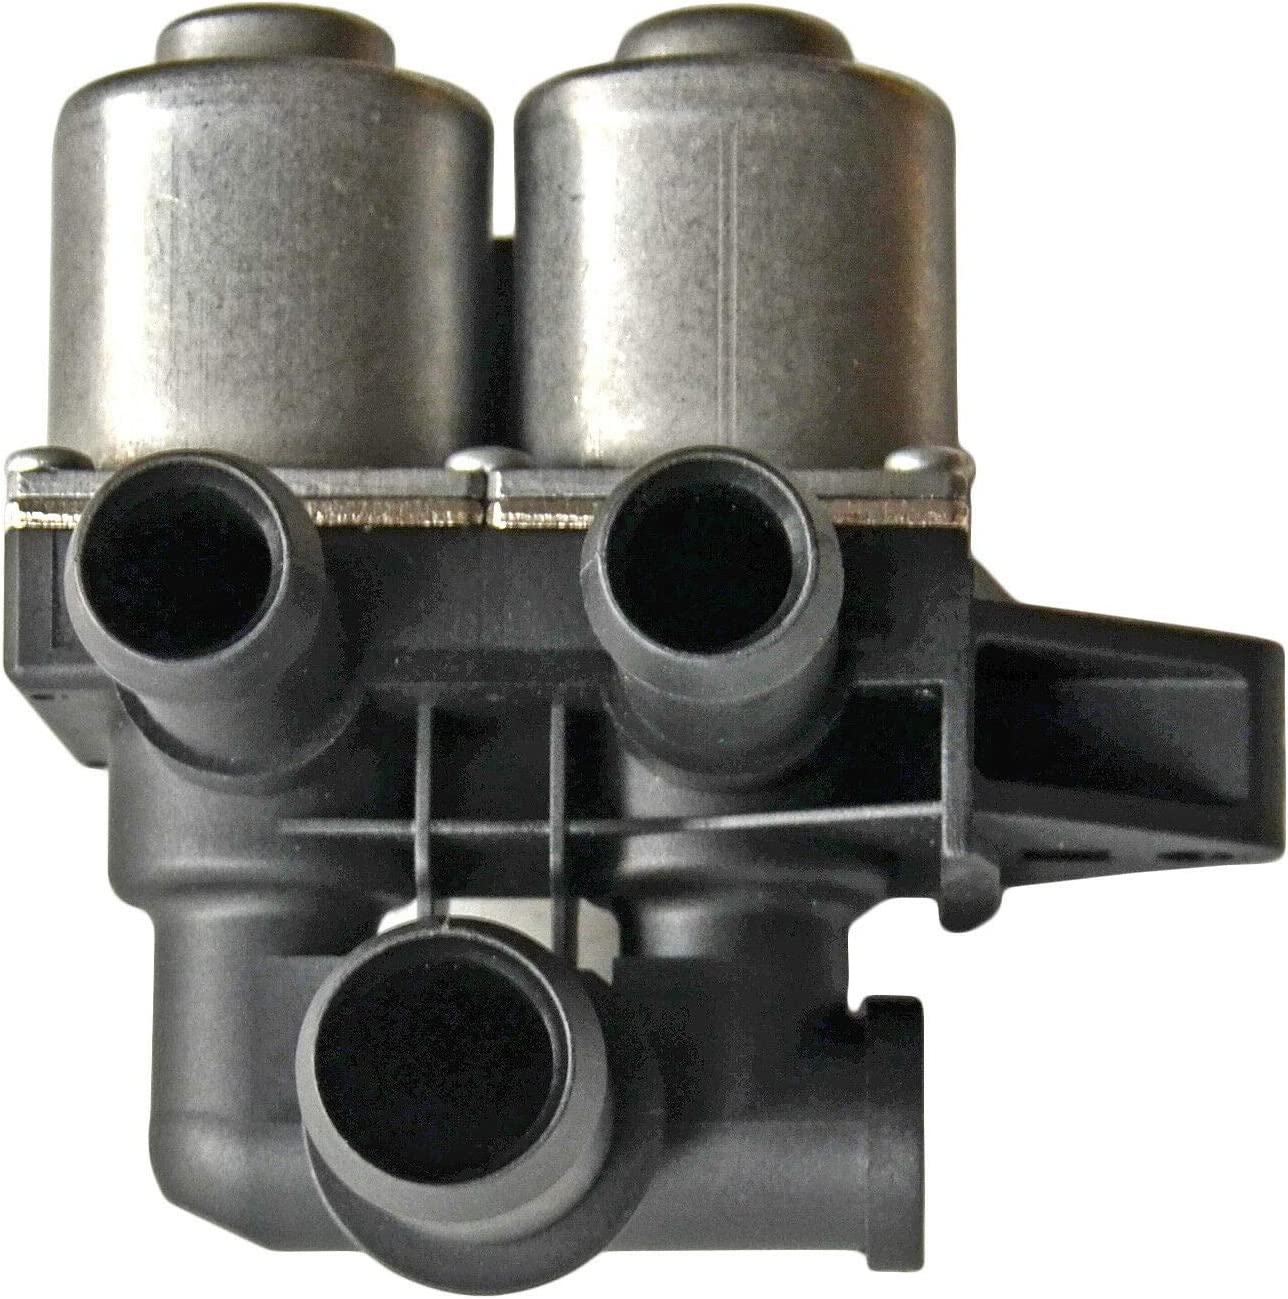 2002-2008 MSQ-CD Heater Control Water Valve For Jaguar S-Type With 3 Ports XR840091 6860143 1147412175